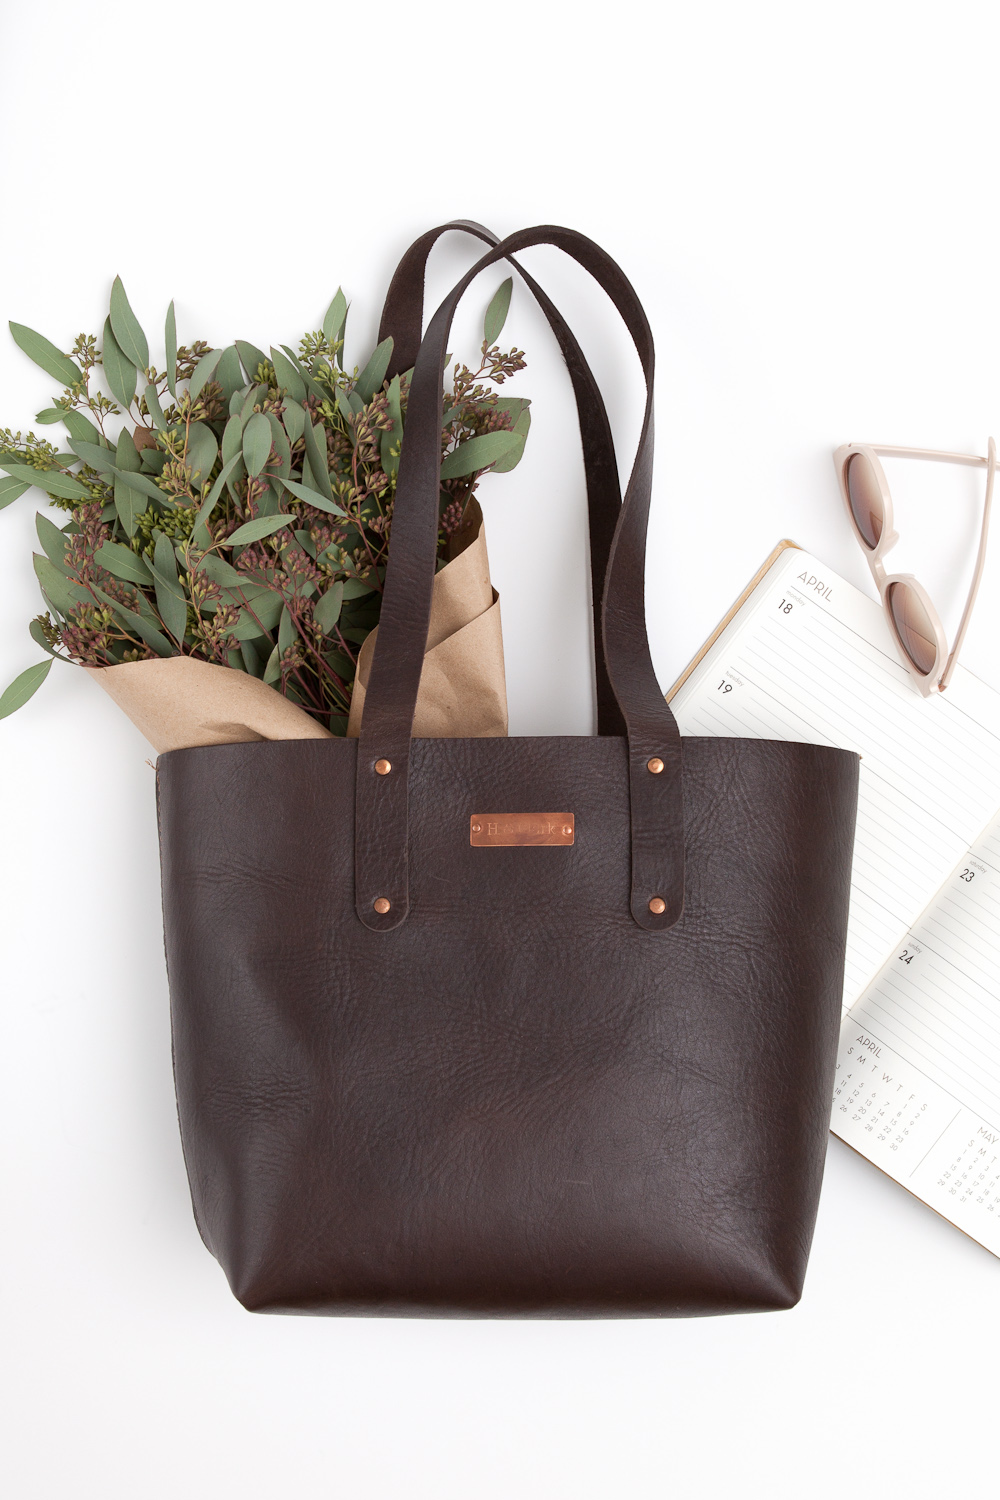 styled product chocolate leather bag